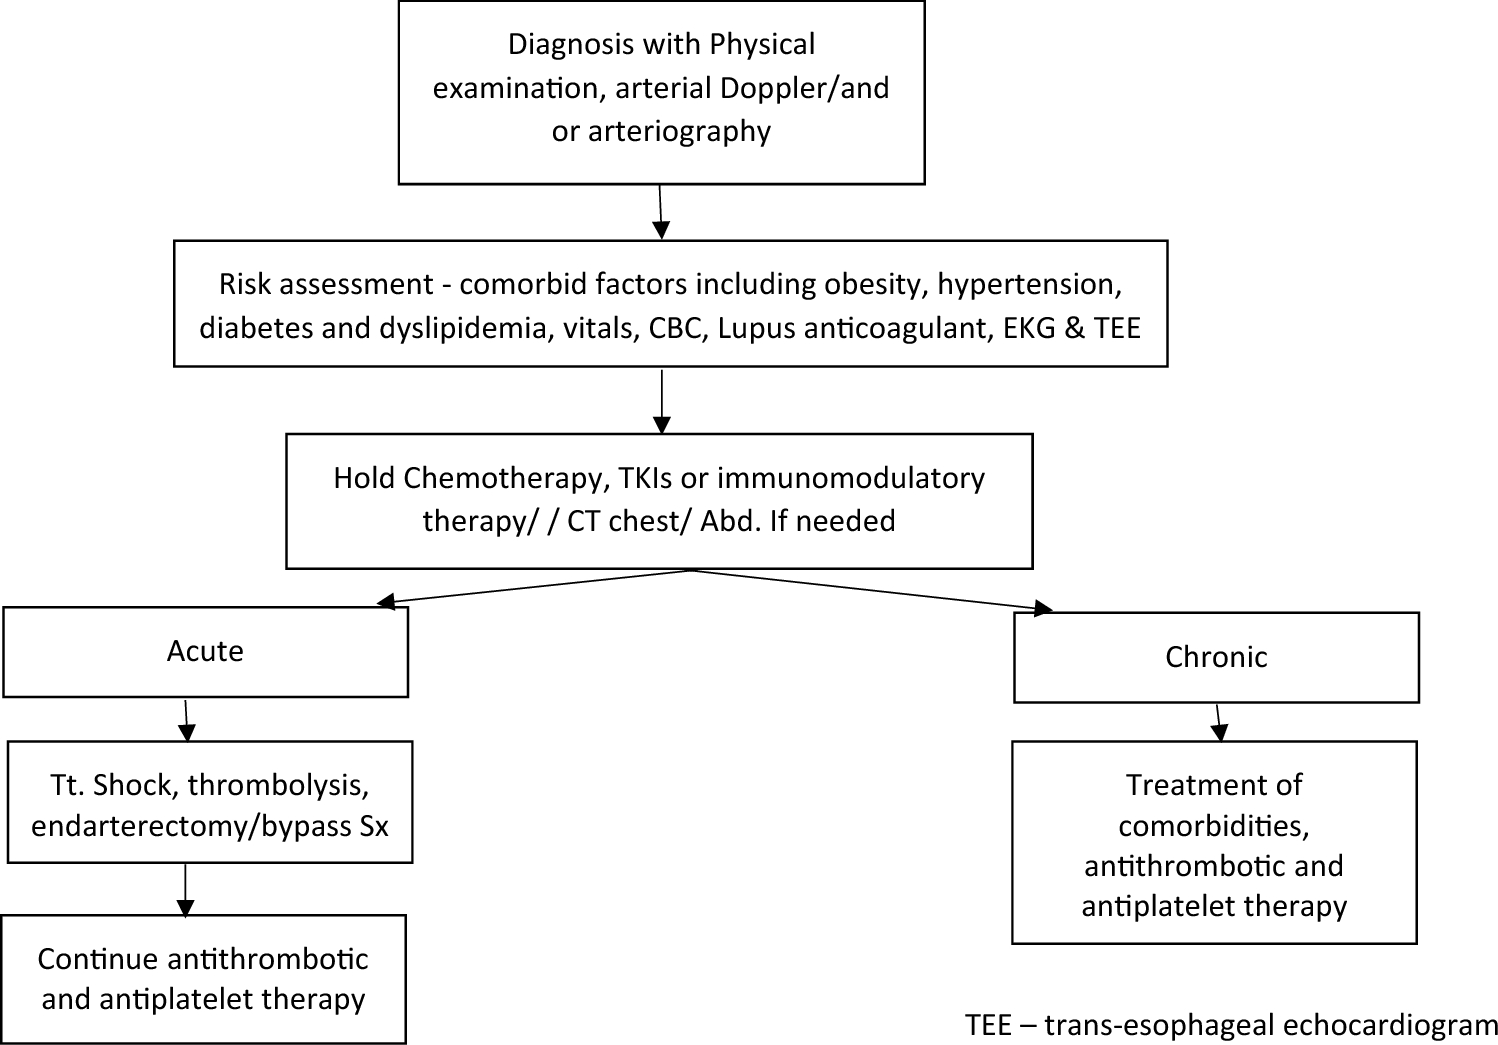 Hematological Malignancies and Arterial Thromboembolism